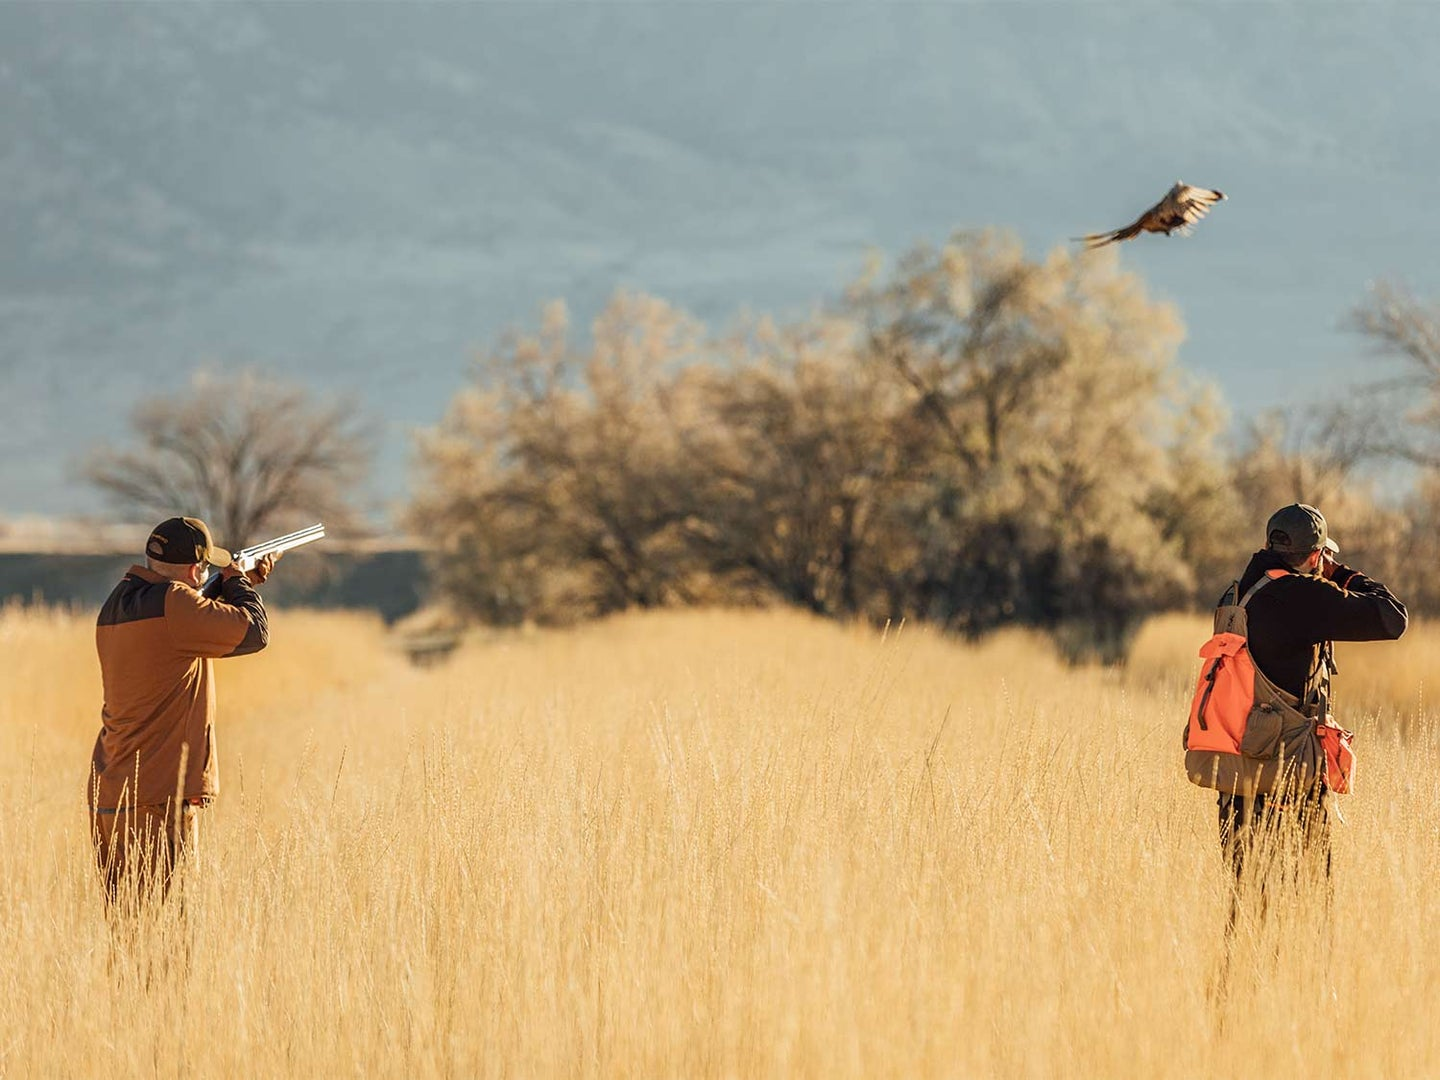 A group of hunters shooting for pheasants in the open fields.